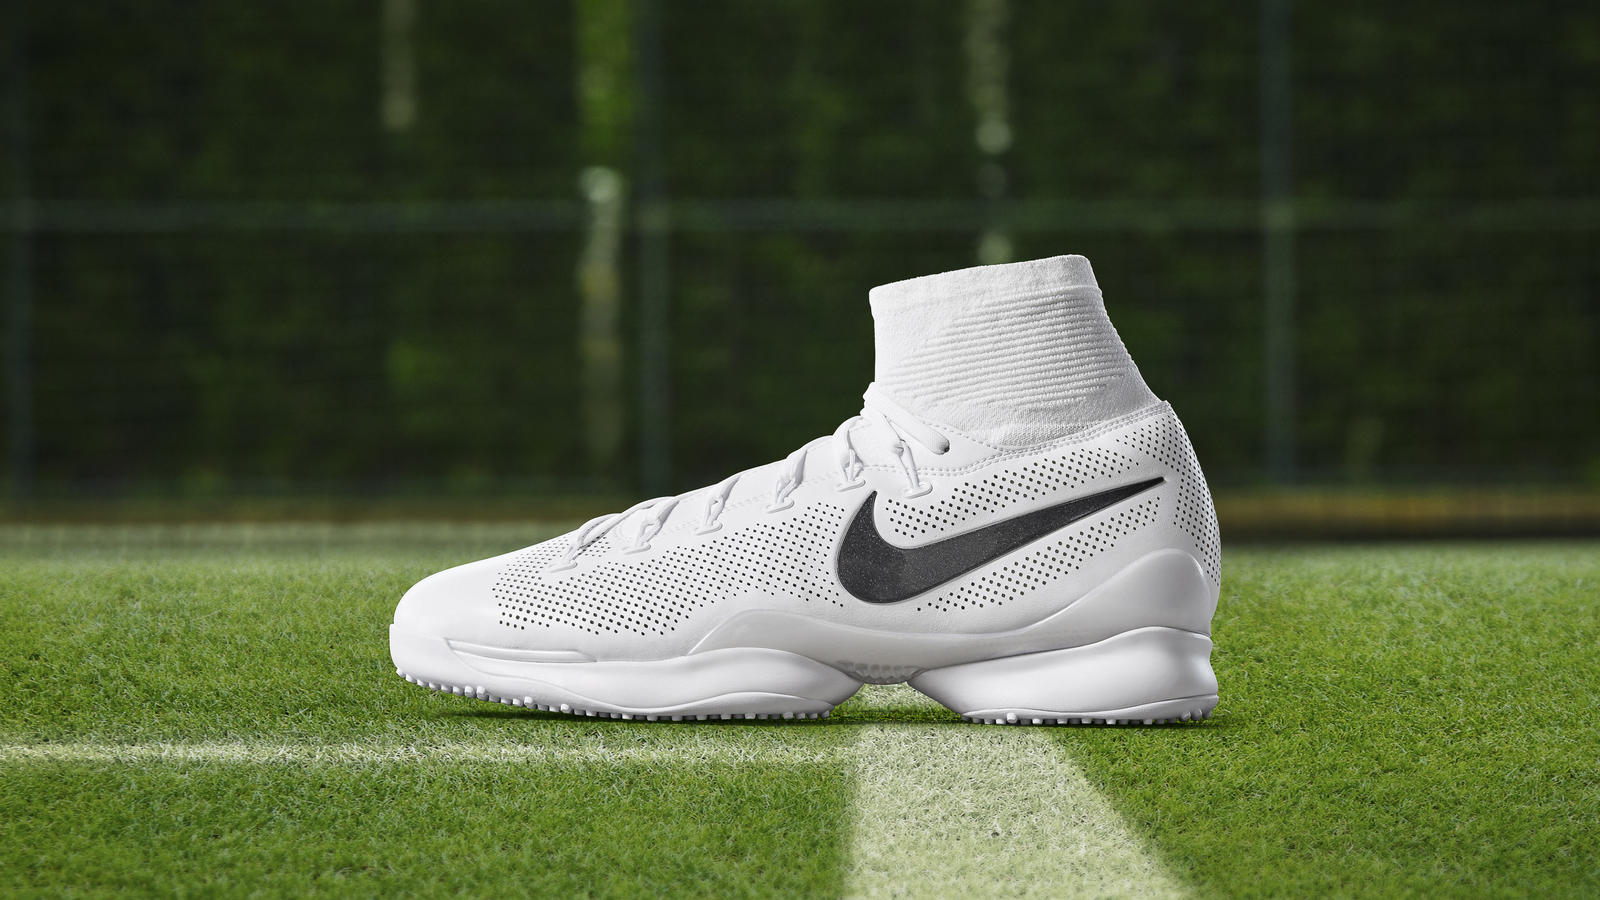 Nikecourt air zoom ultrafly grass 1 hd 1600